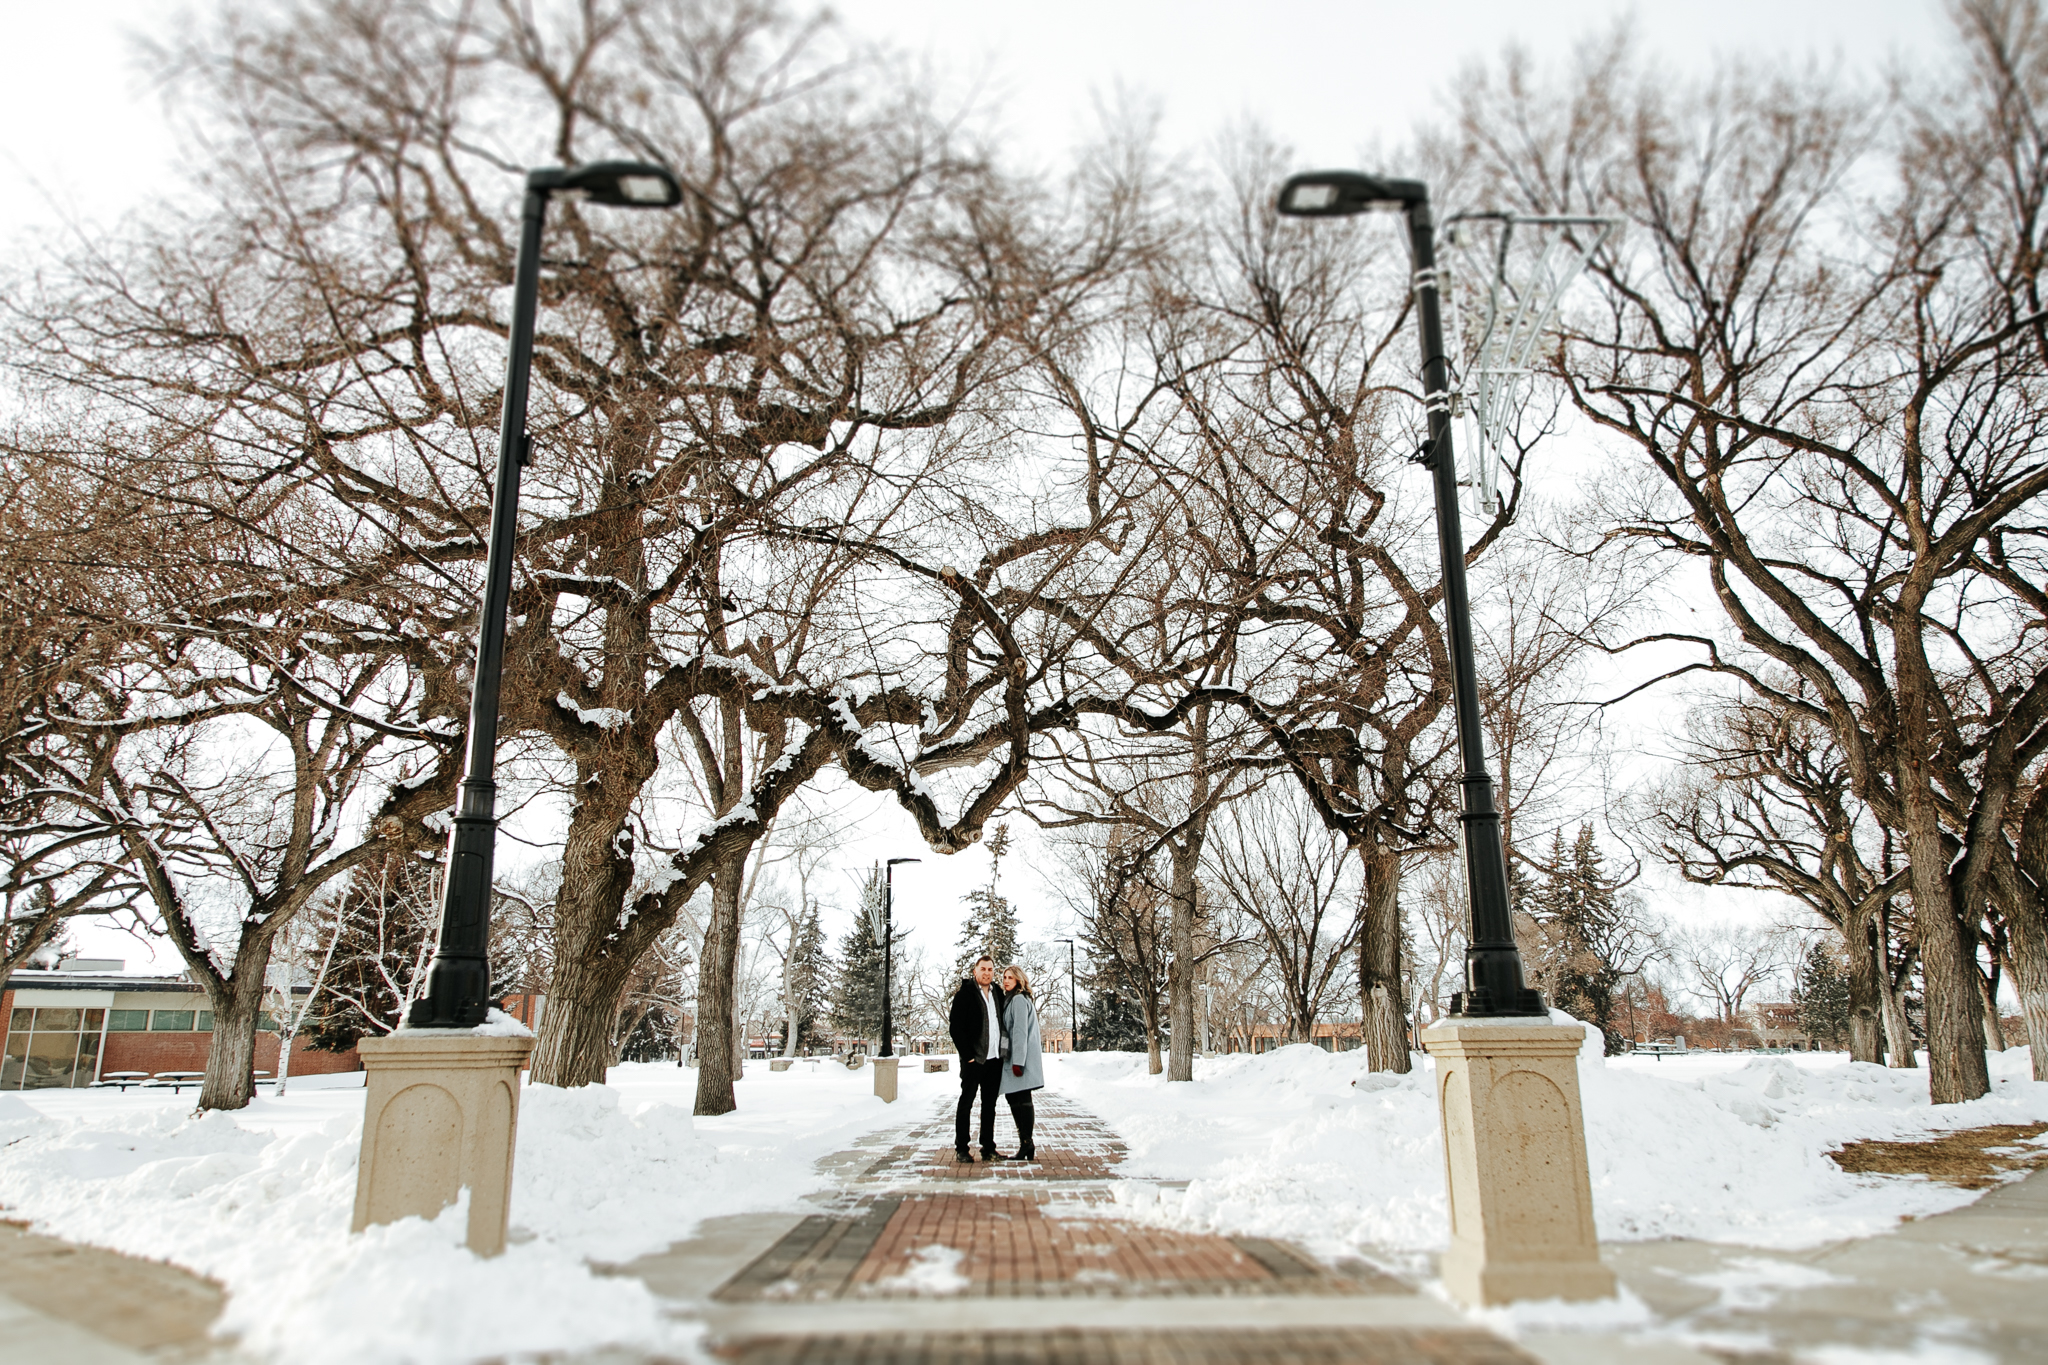 lethbridge-photographer-love-and-be-loved-photography-brandon-danielle-winter-engagement-downtown-yql-picture-image-photo-48.jpg